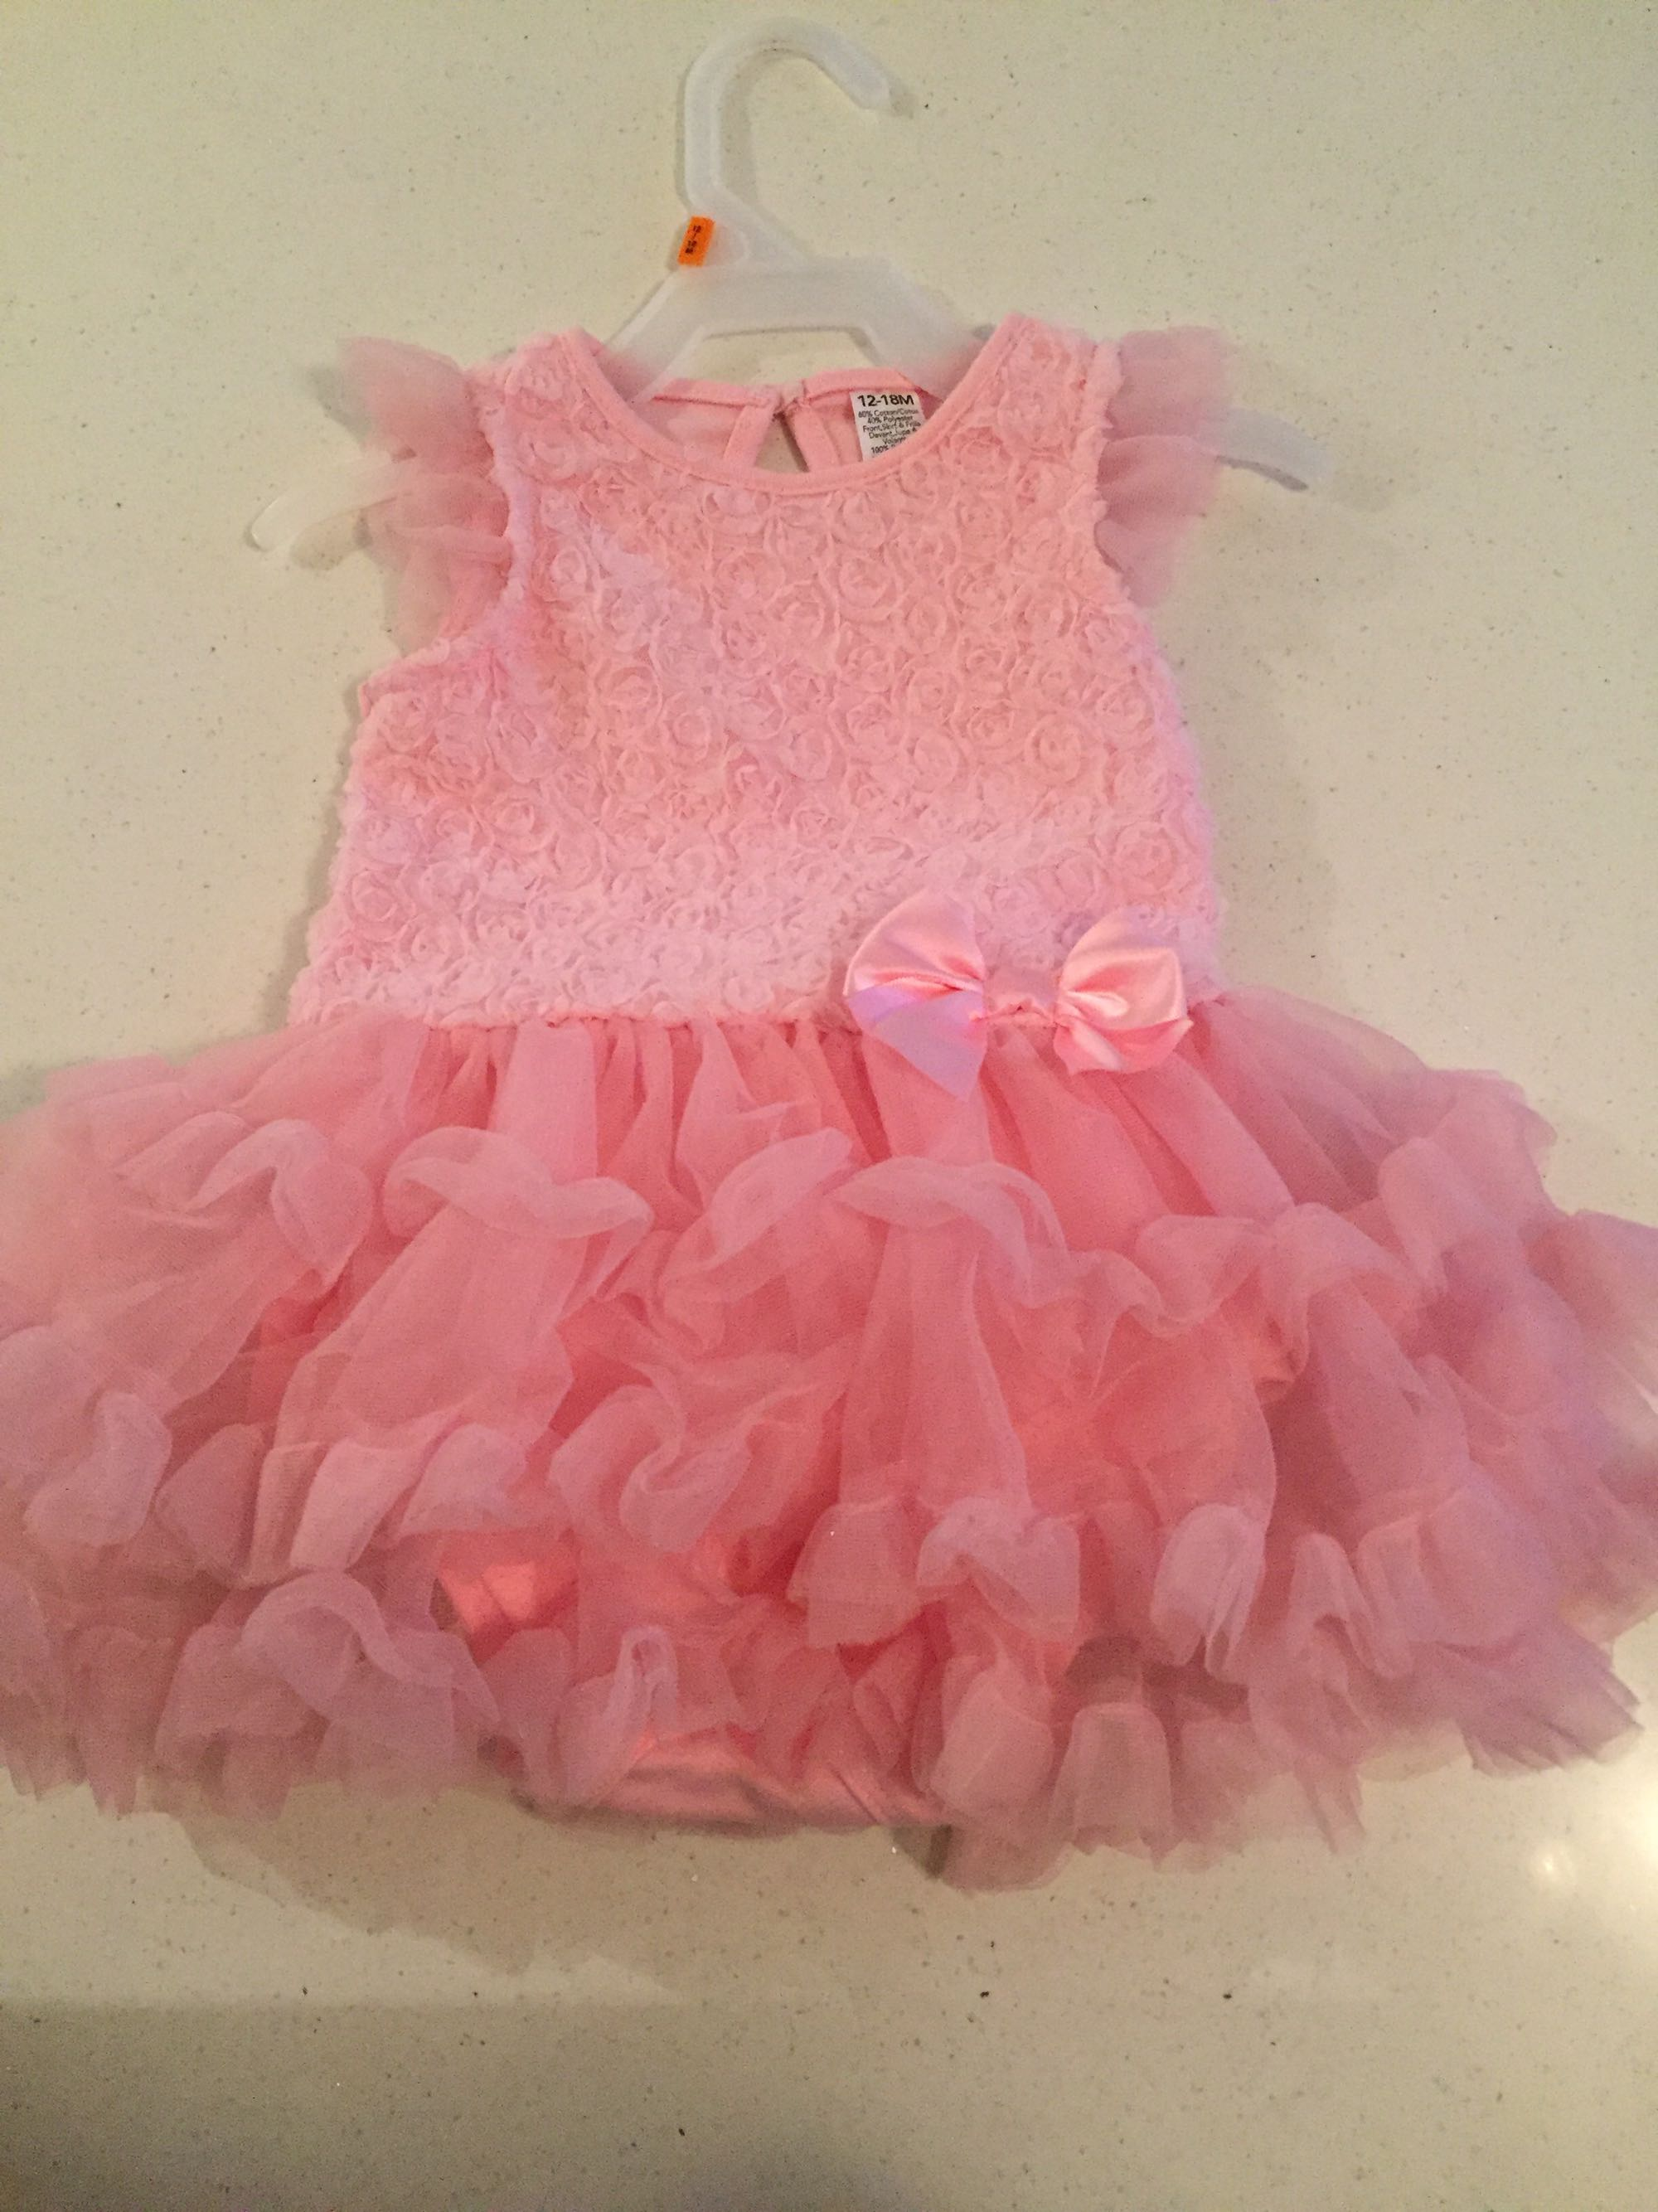 Brand new pink ruffled 12-18 month baby dress